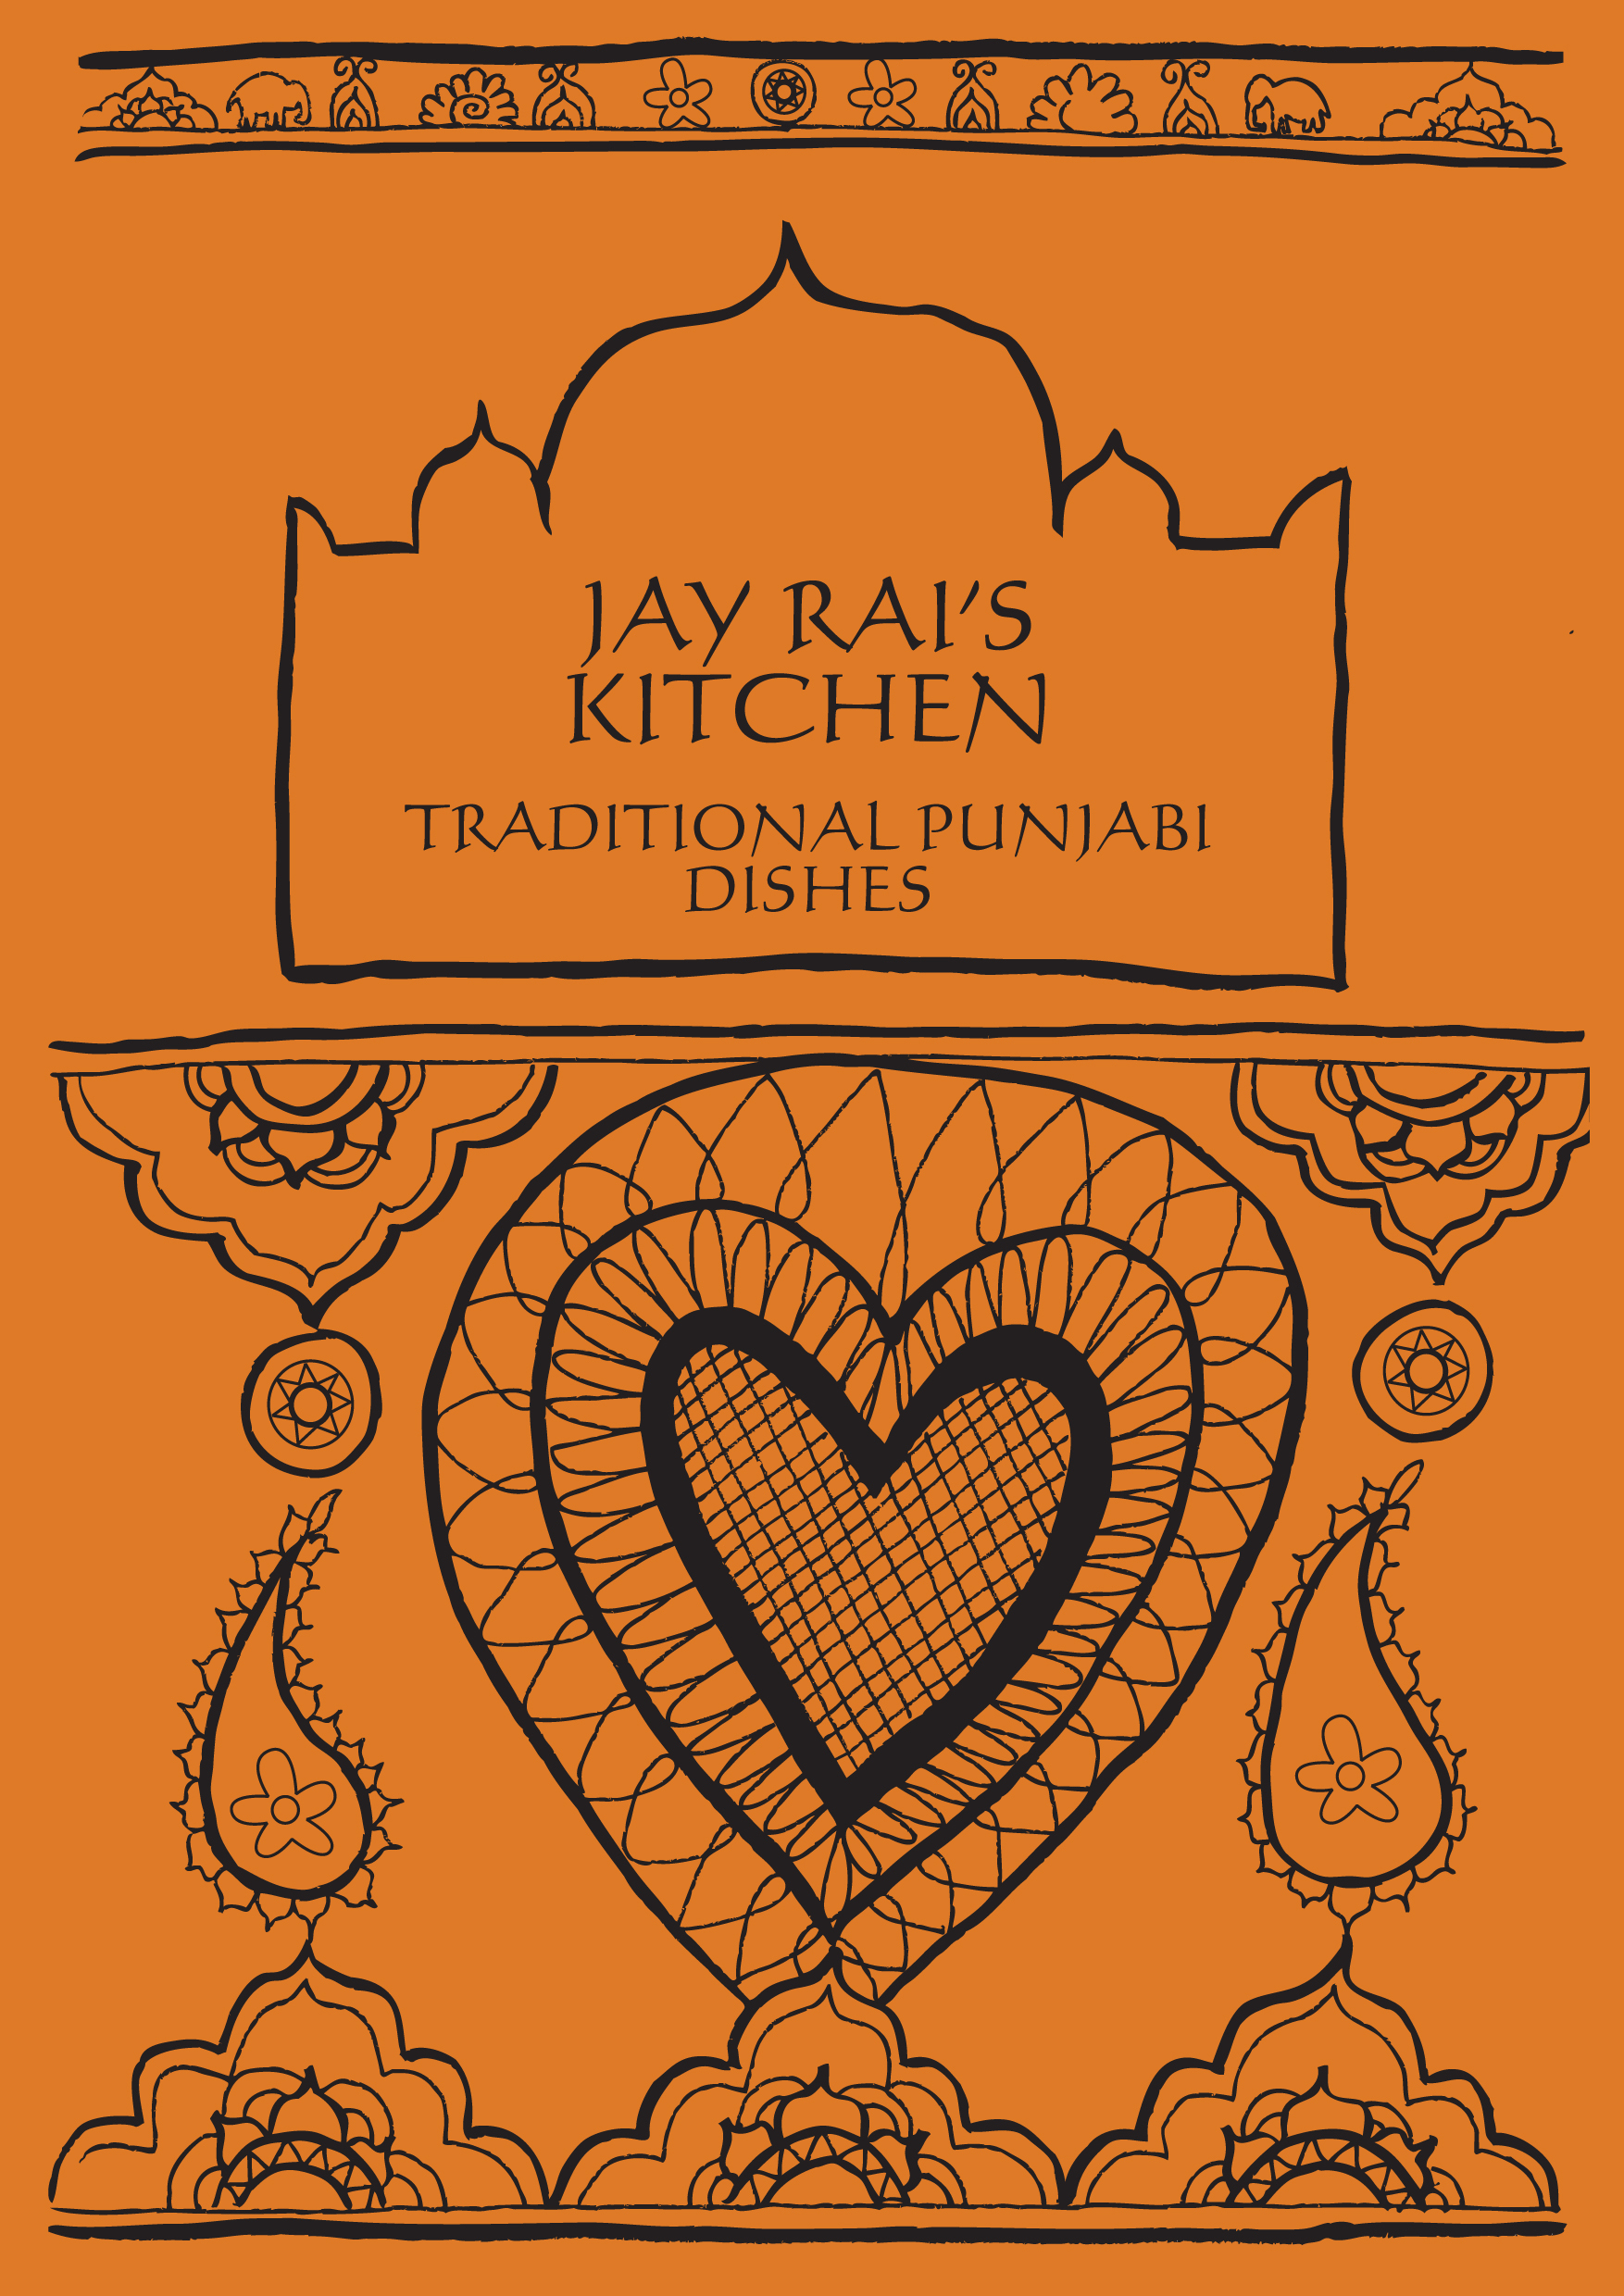 Jay Rai's Kitchen: Traditional Punjabi Dishes